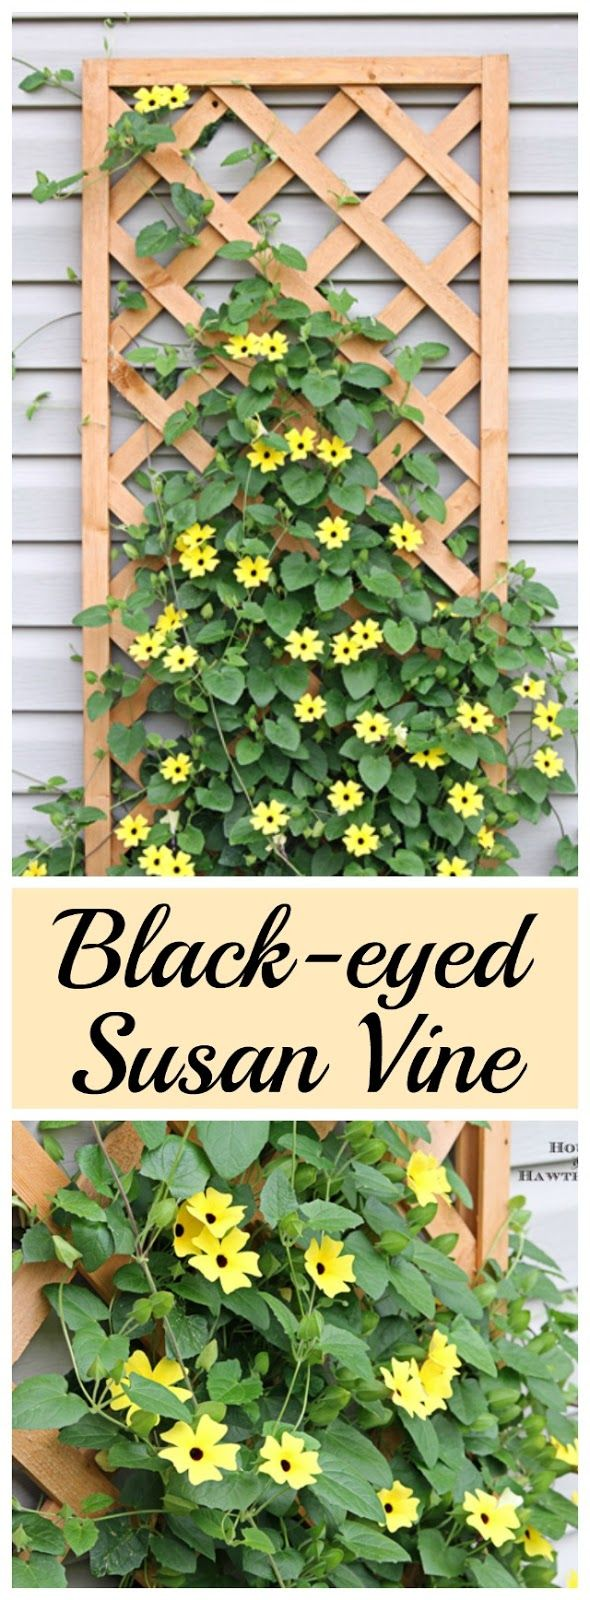 Black-eyed Susan vine - you must plant one of these in your garden this year - it's the vine that keeps going strong all summer long!